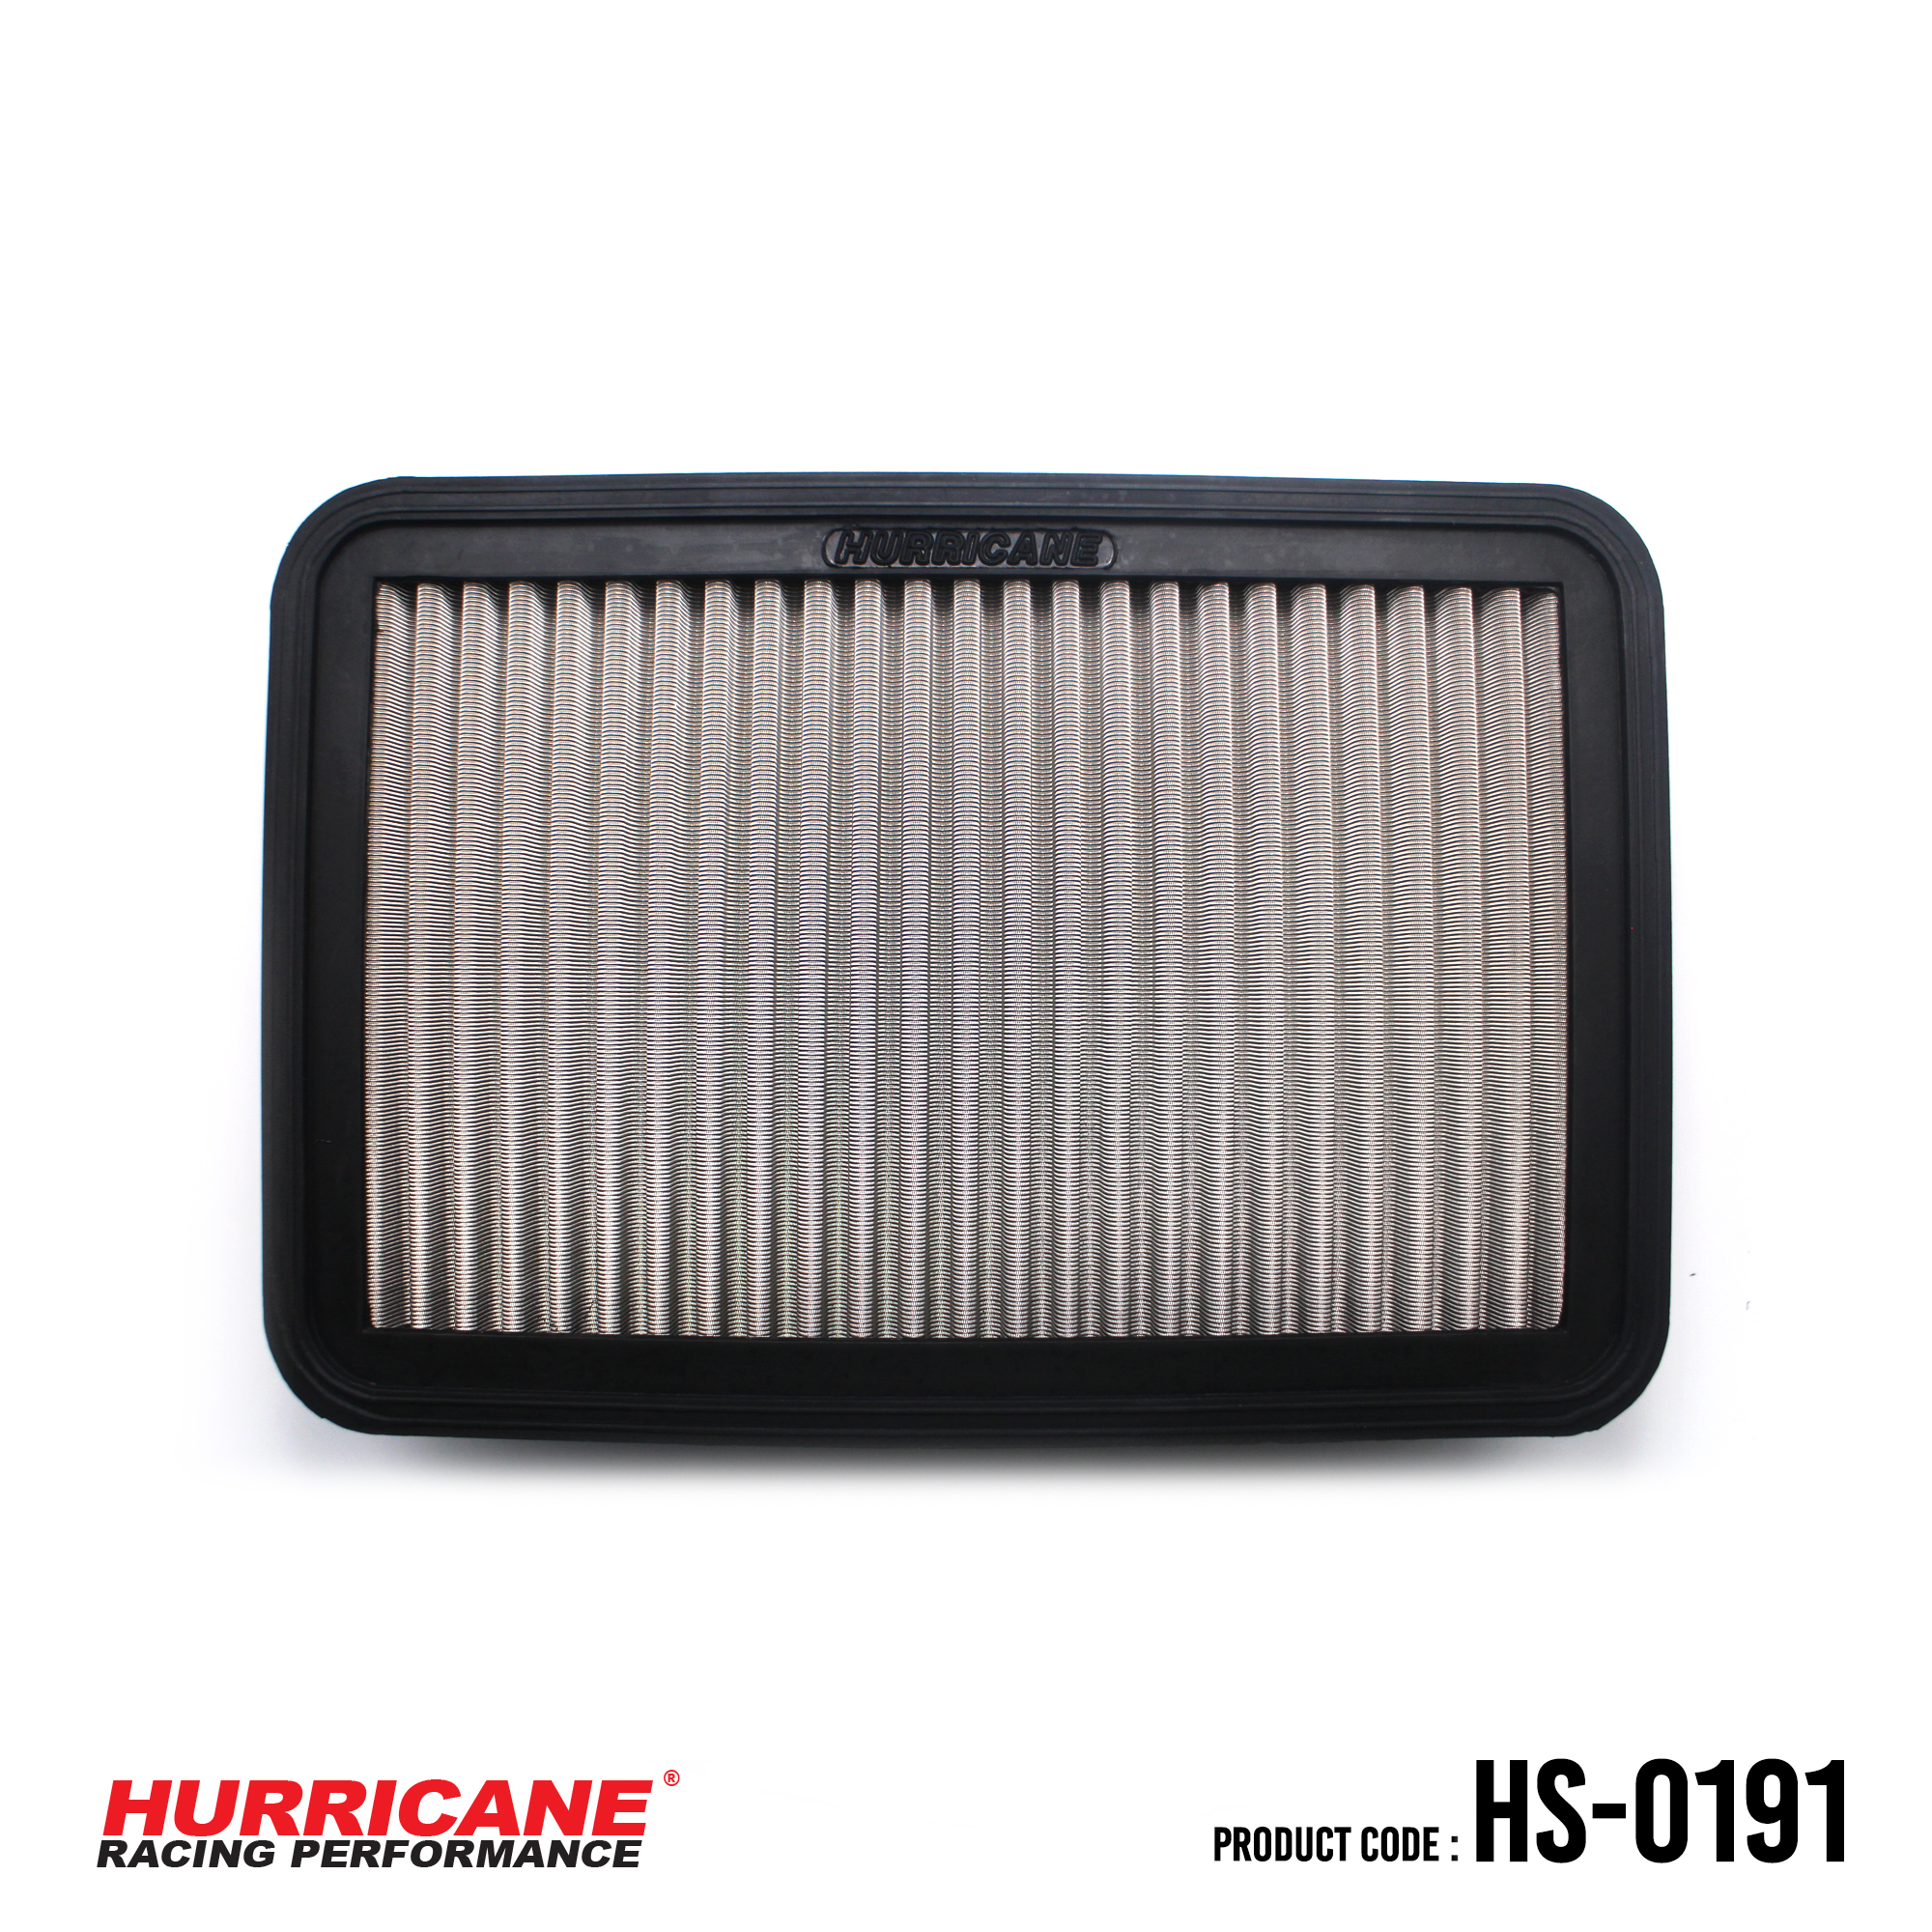 HURRICANE STAINLESS STEEL AIR FILTER FOR HS-0191 Mitsubishi